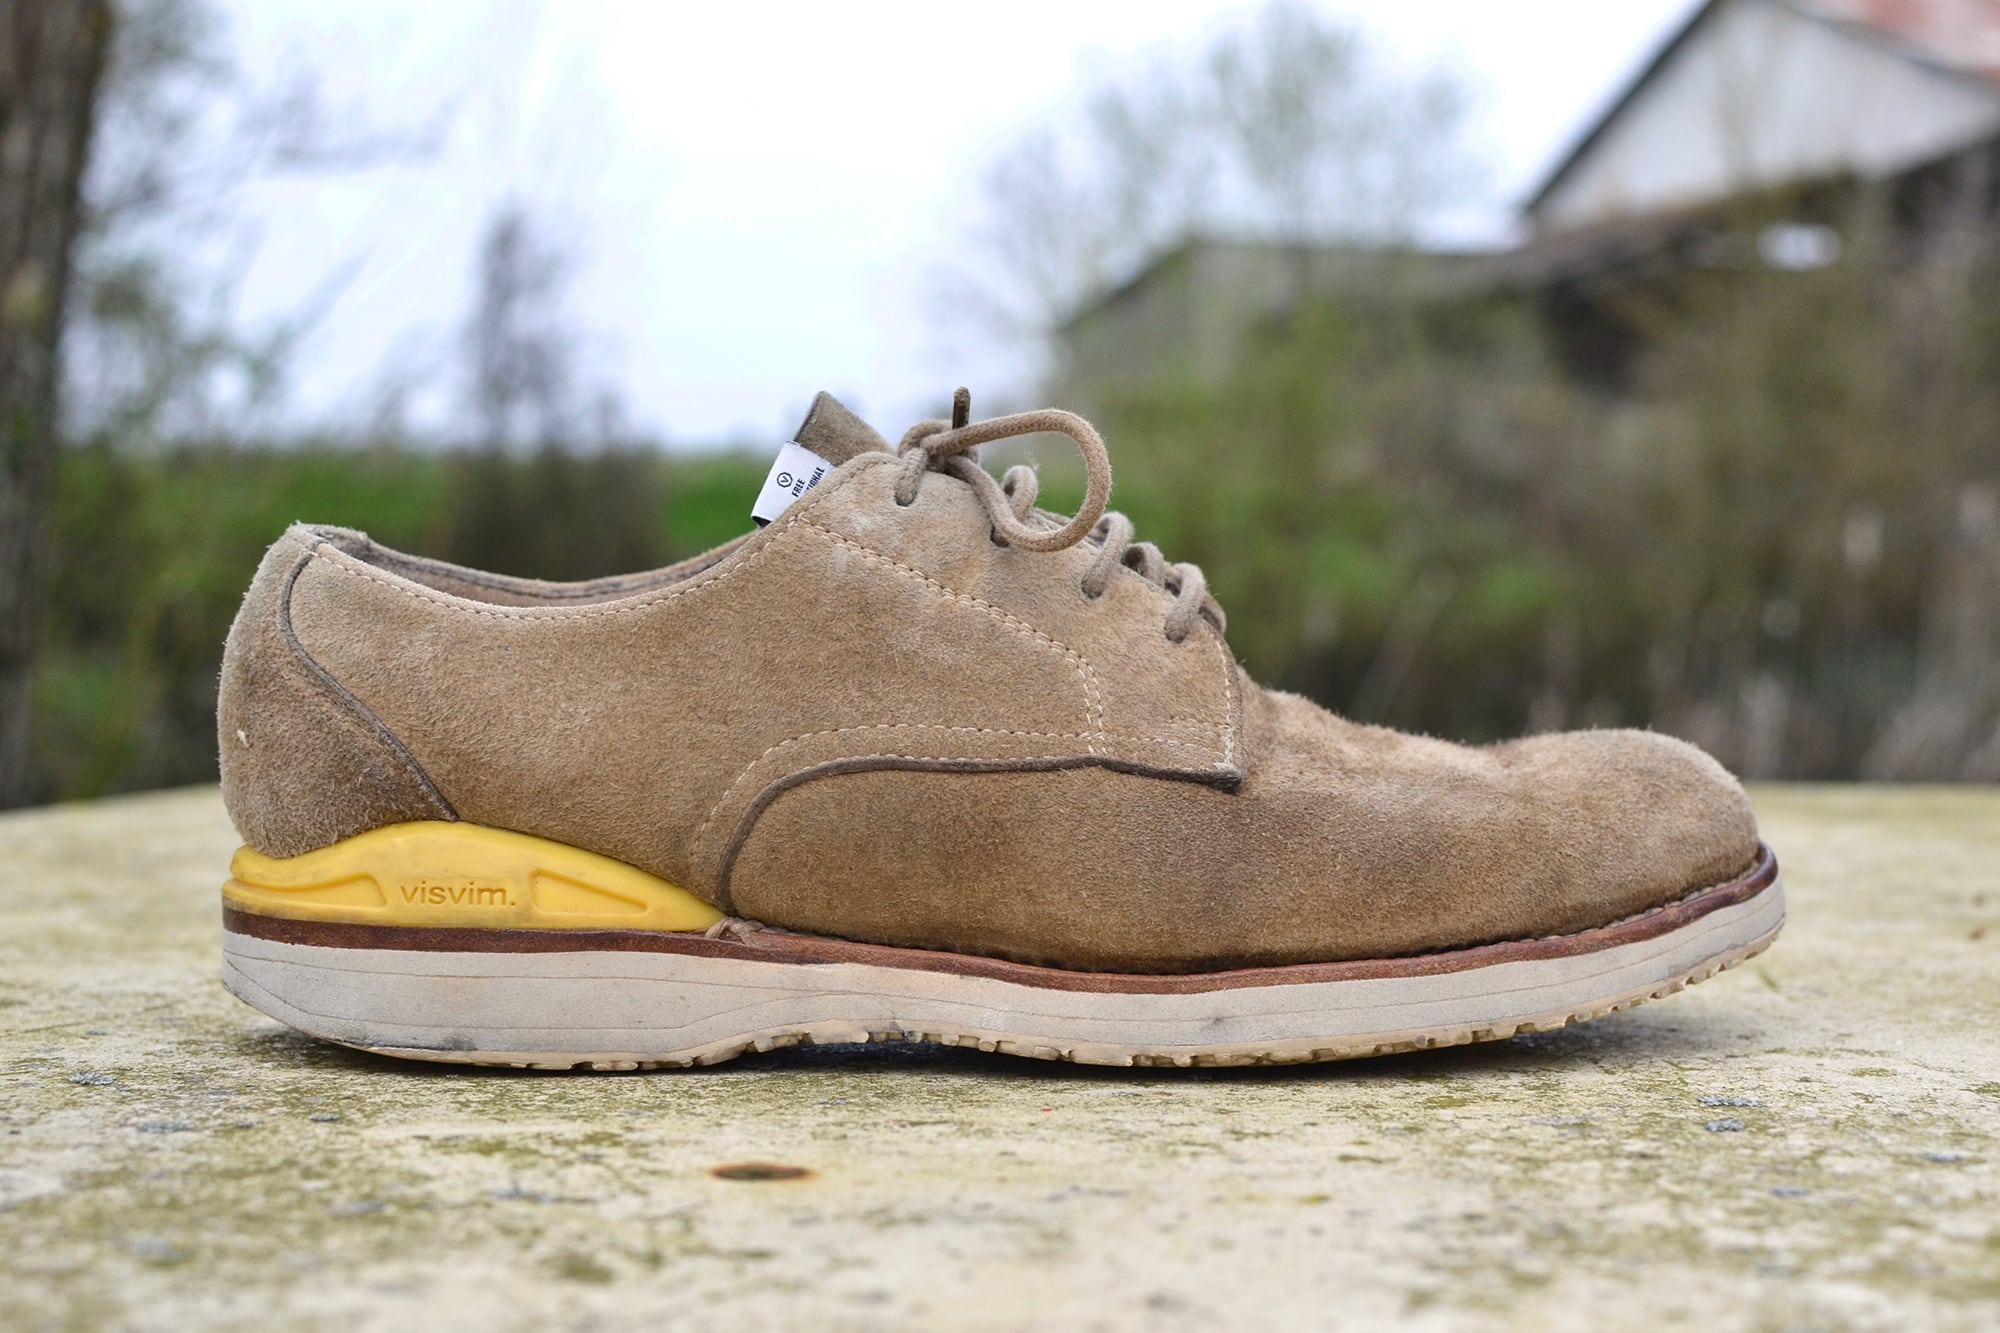 Visvim virgil folk low shoes - sand suede leather - 1